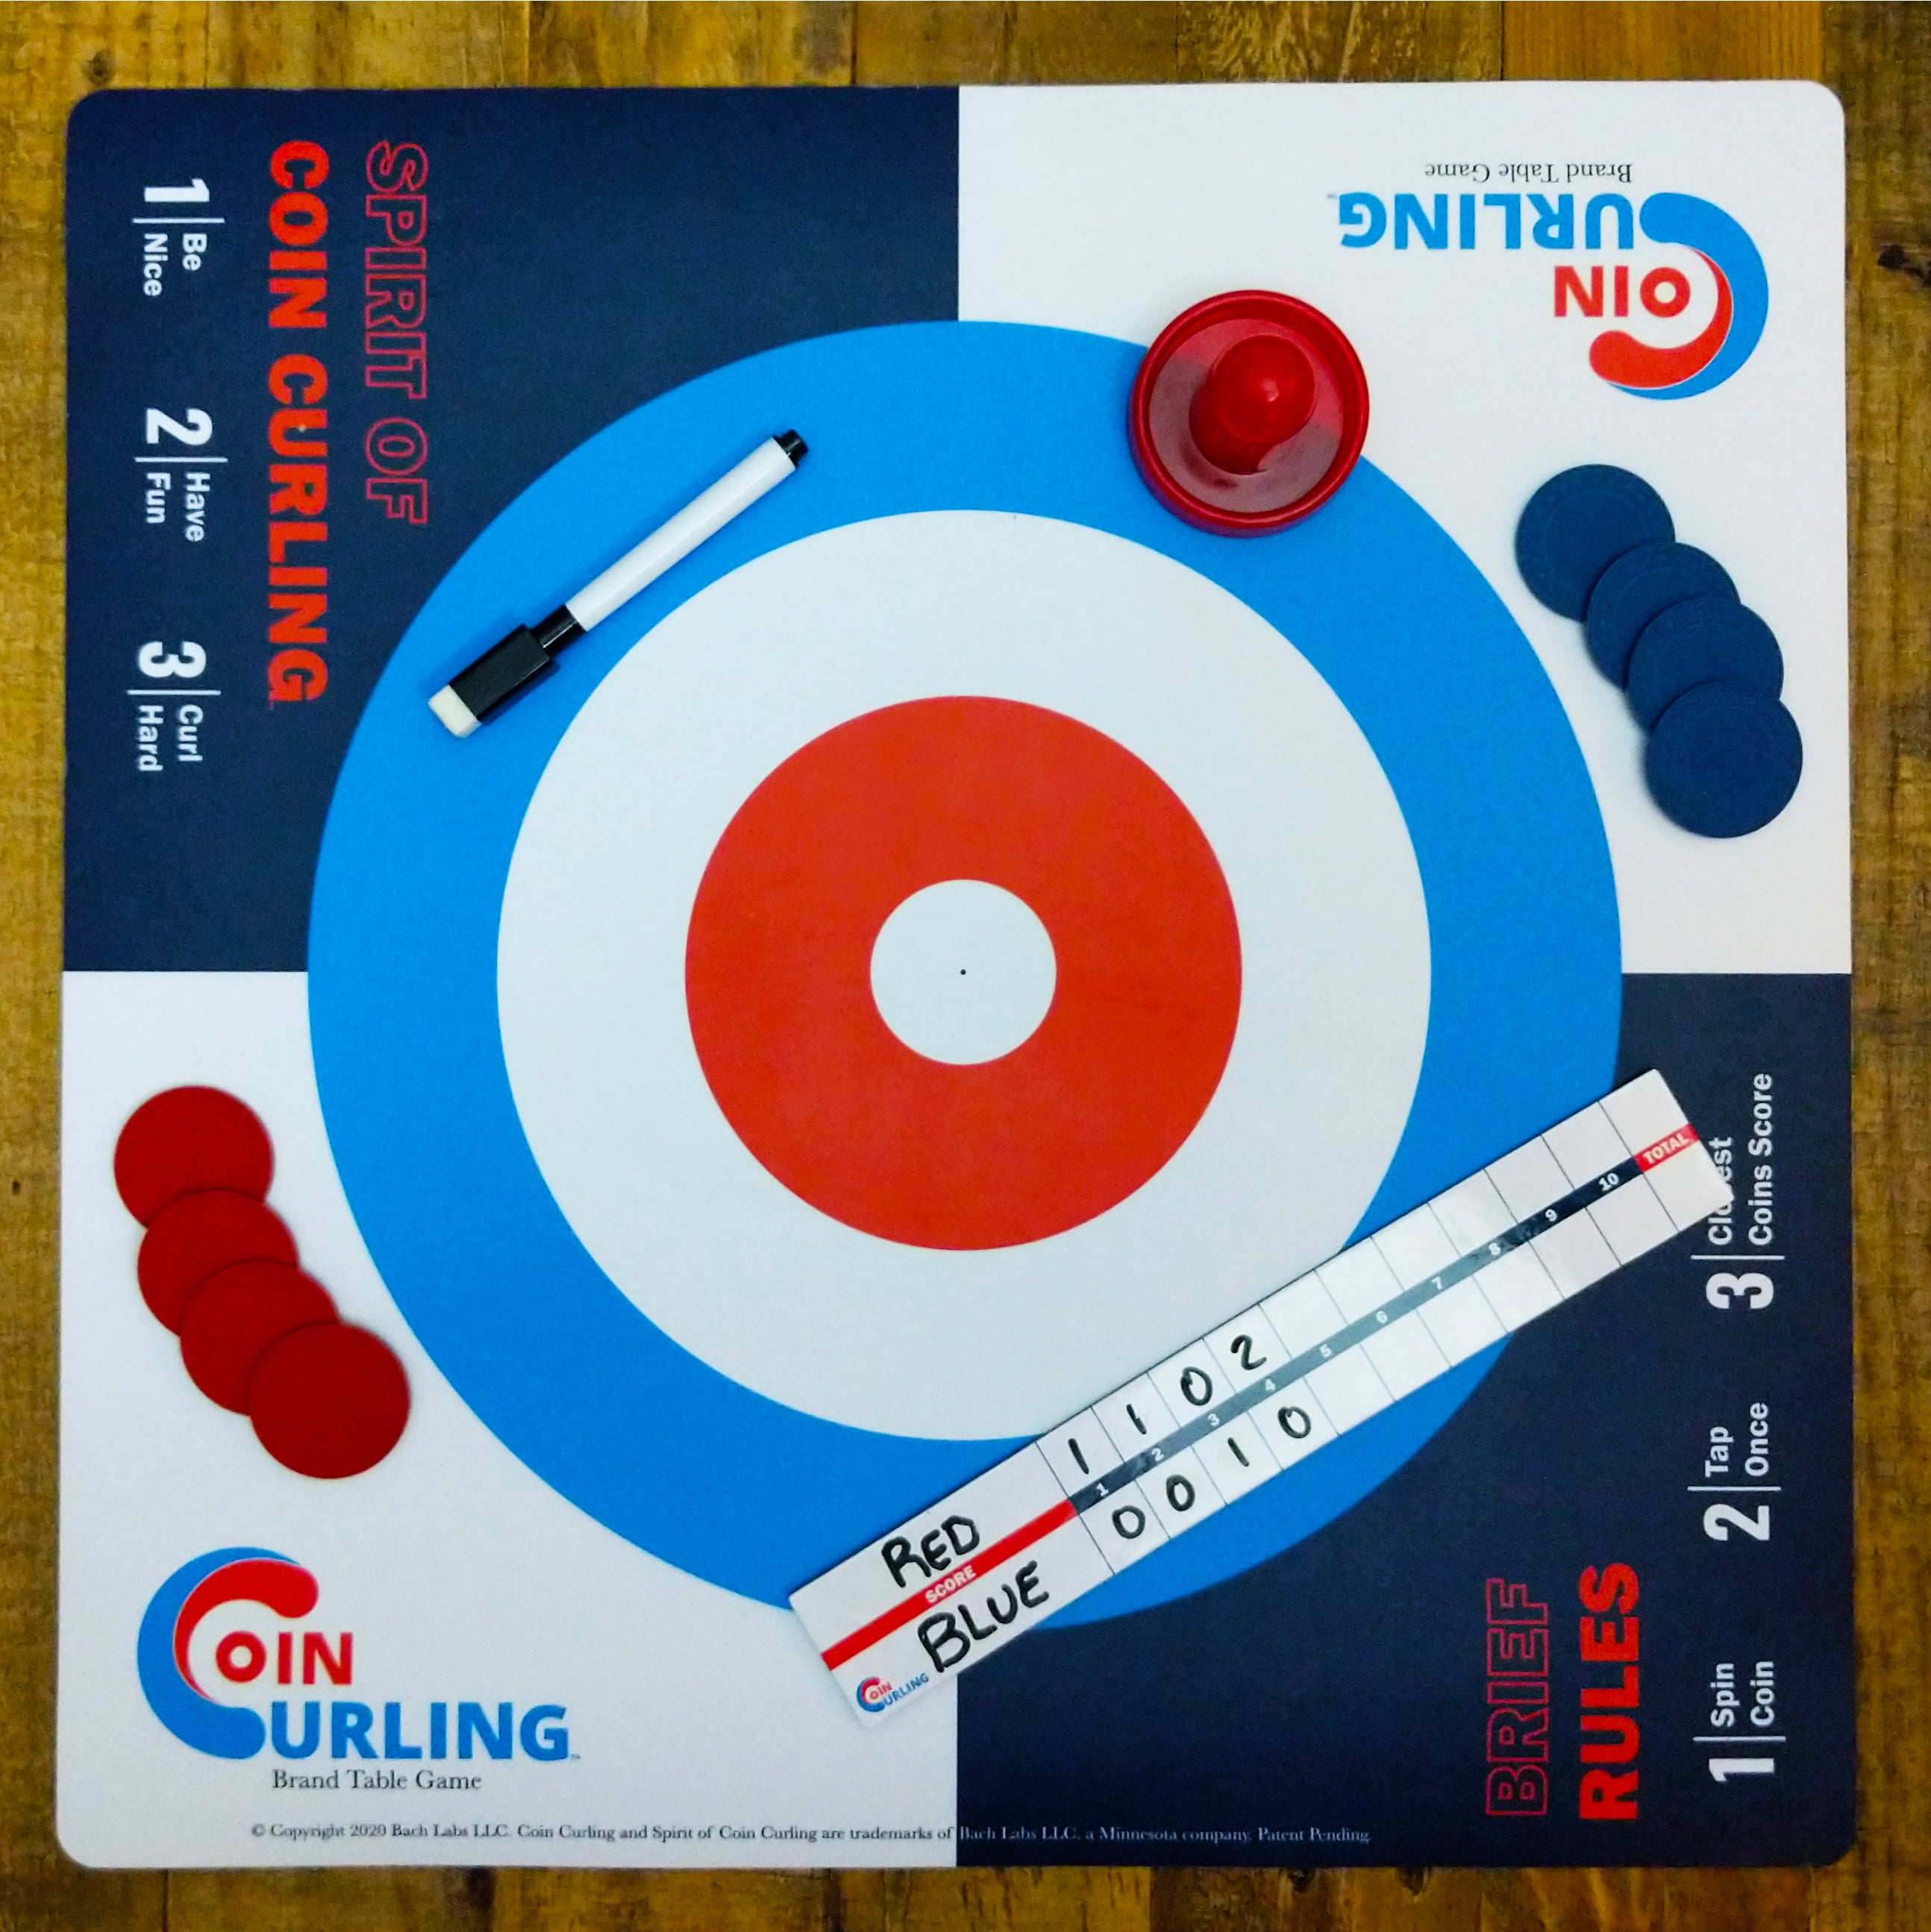 Coin Curling